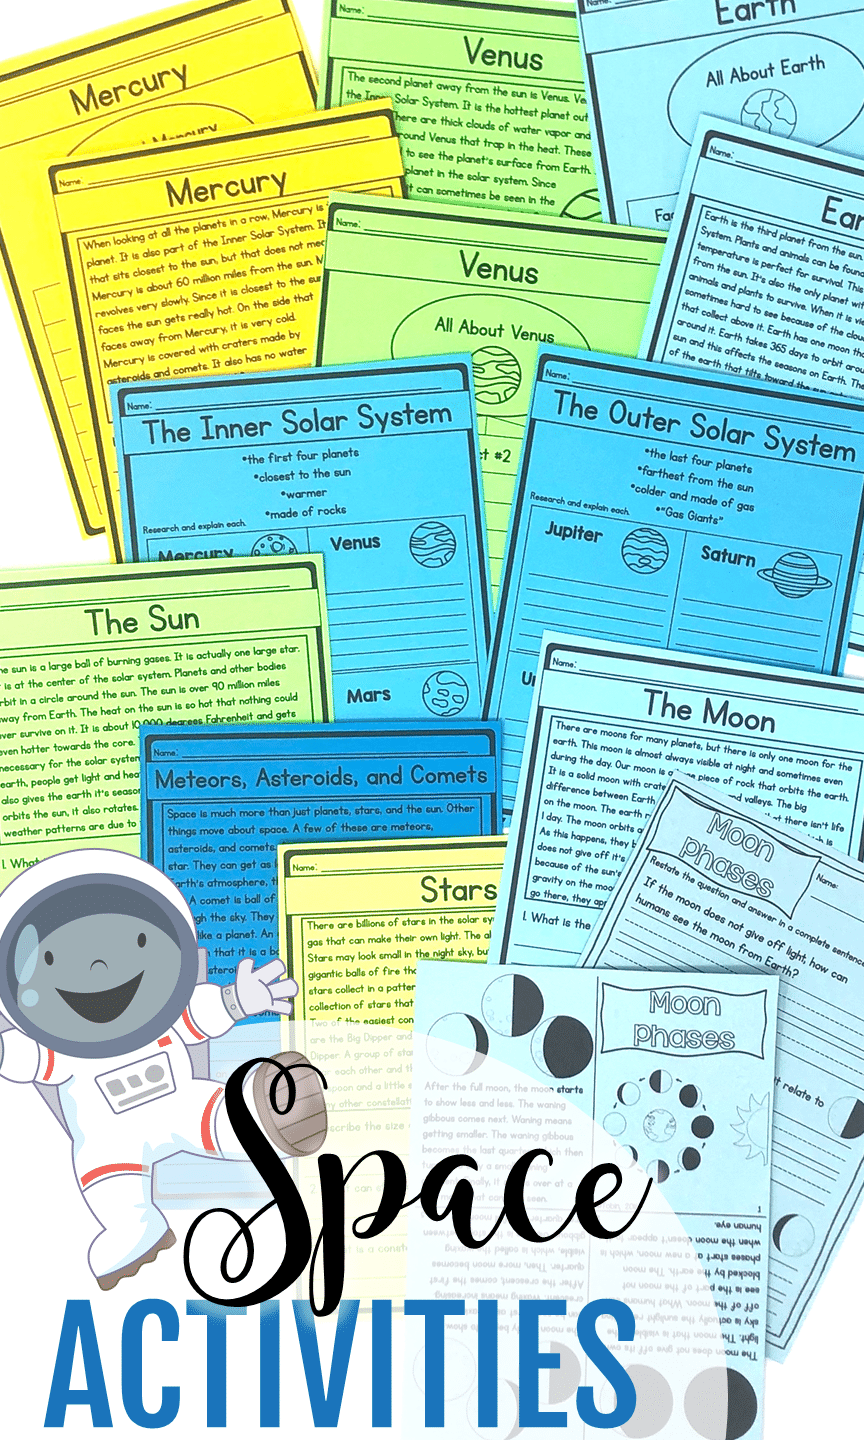 Space science unit covers primary science activities for kids that deals with space, planets, solar system, and other science resources.